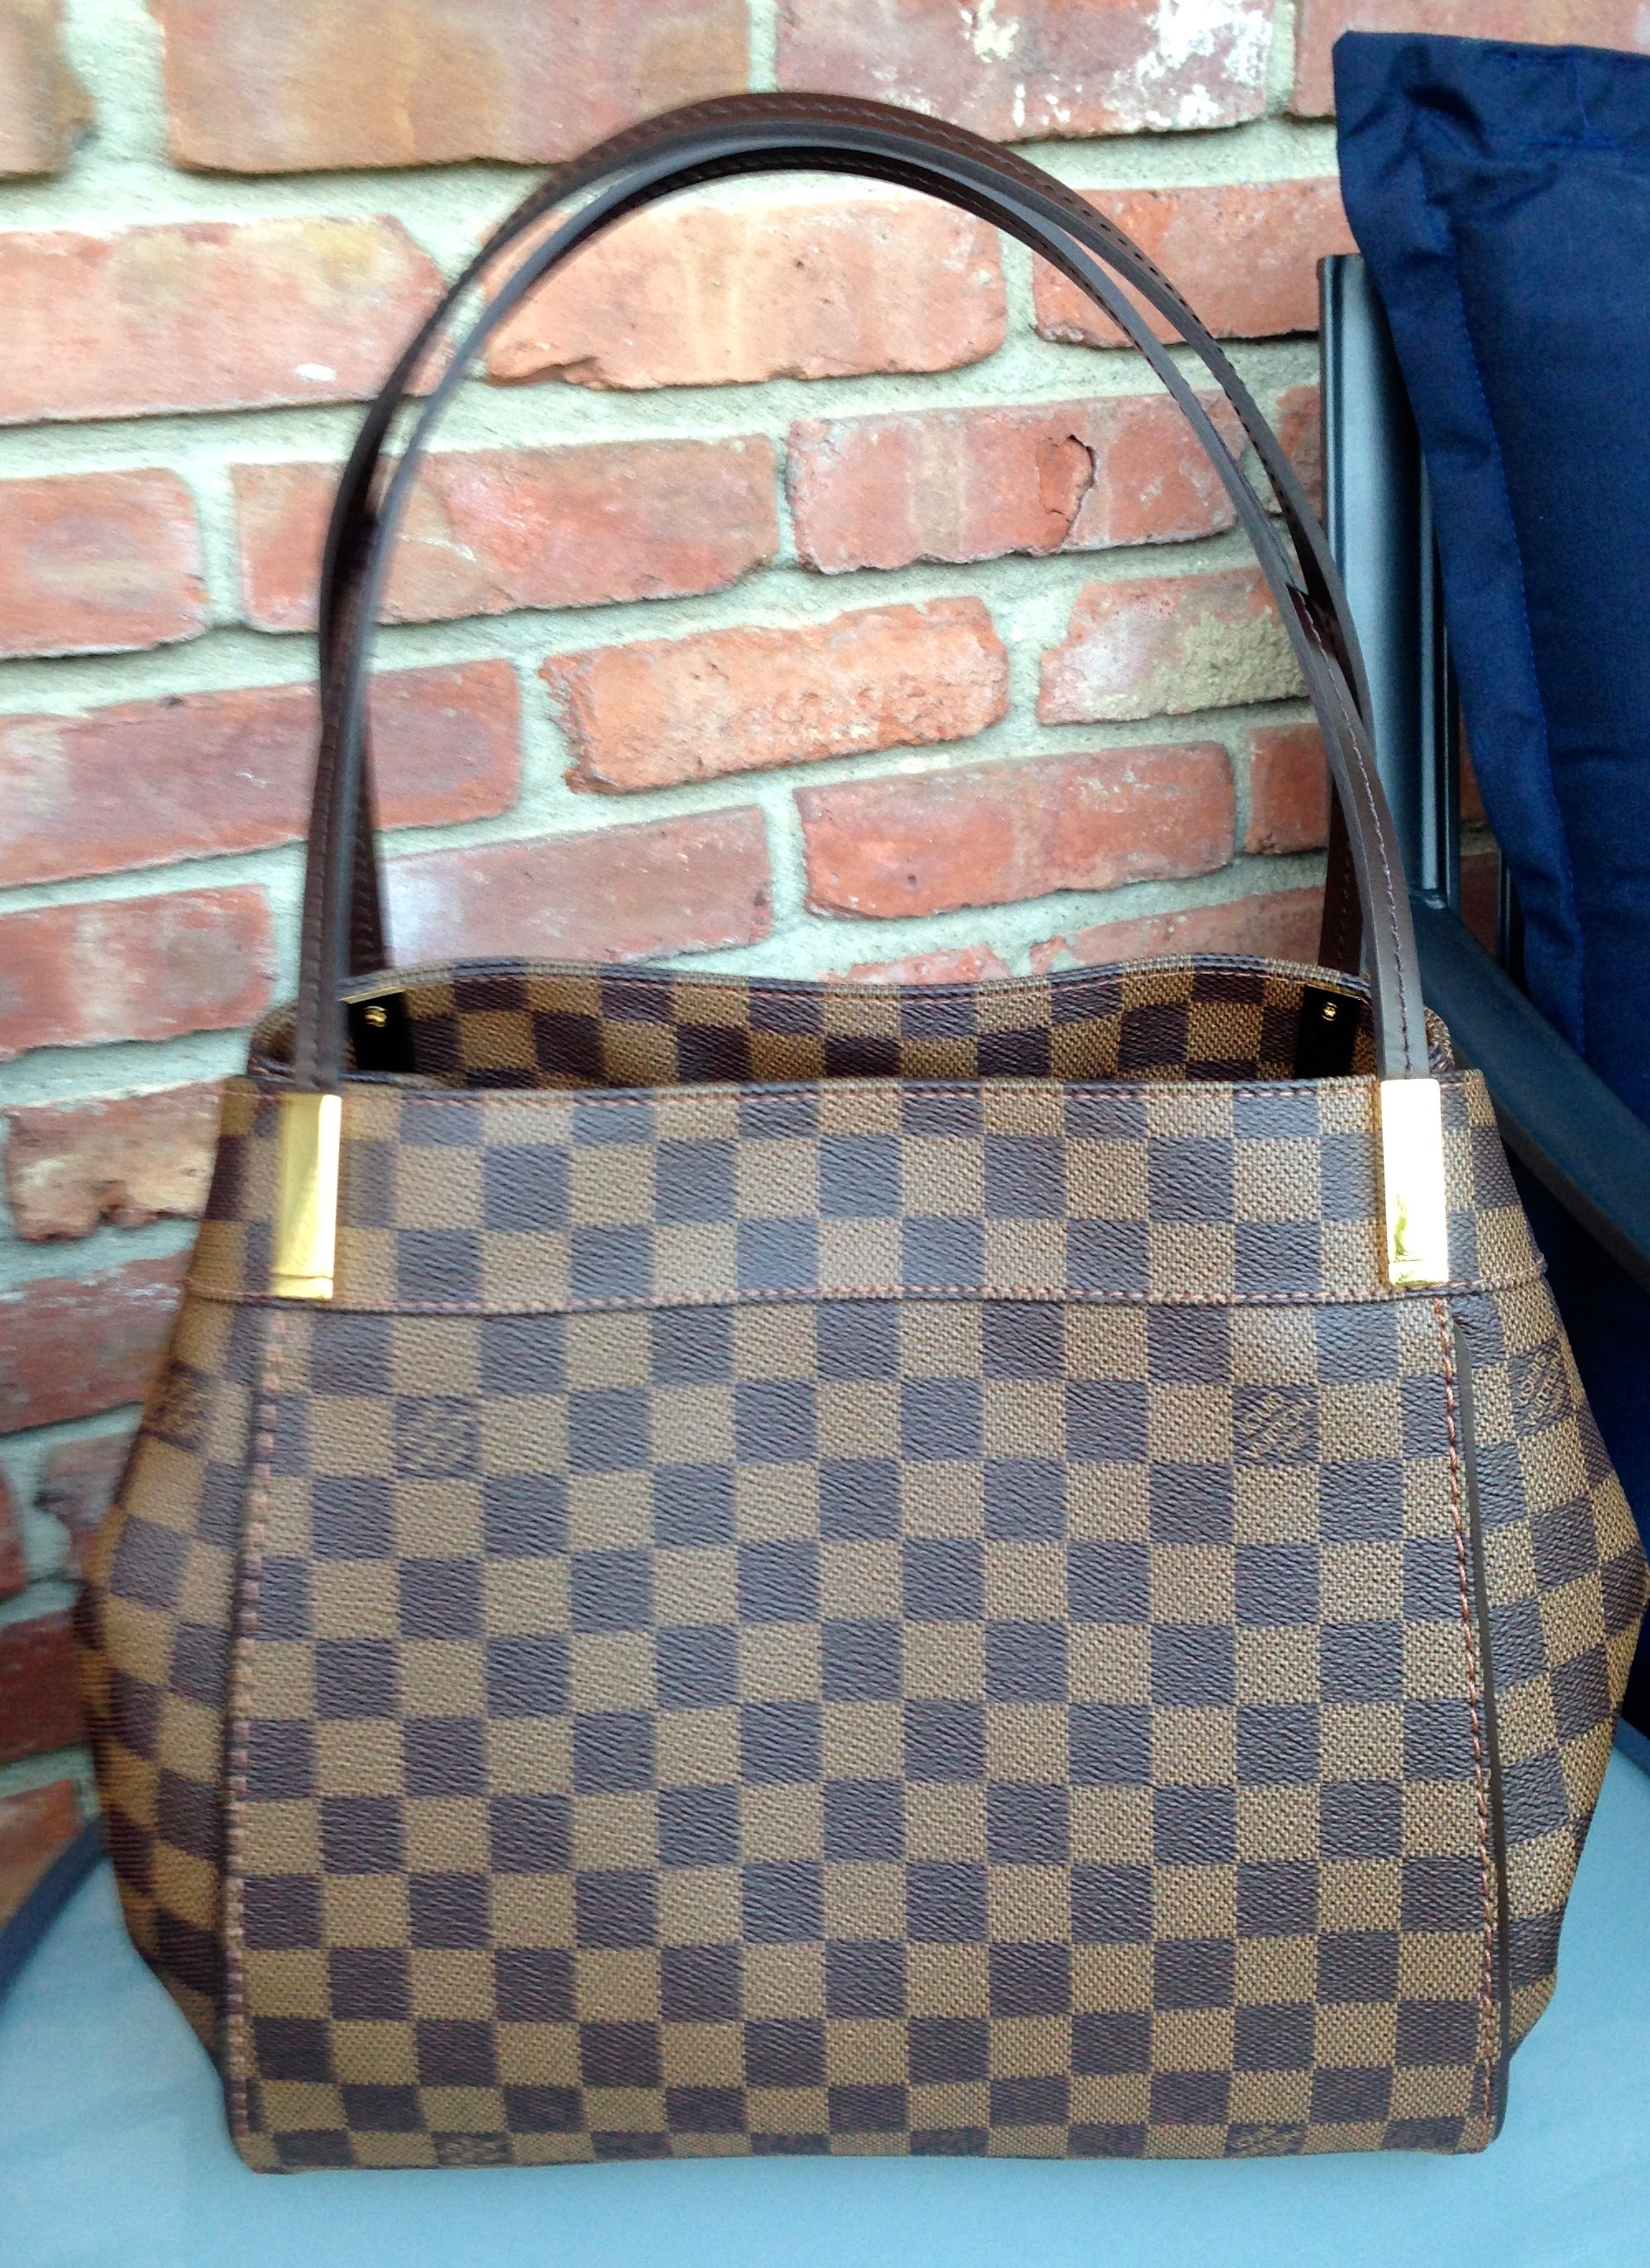 6cc082661bb8 Louis Vuitton Marylebone PM